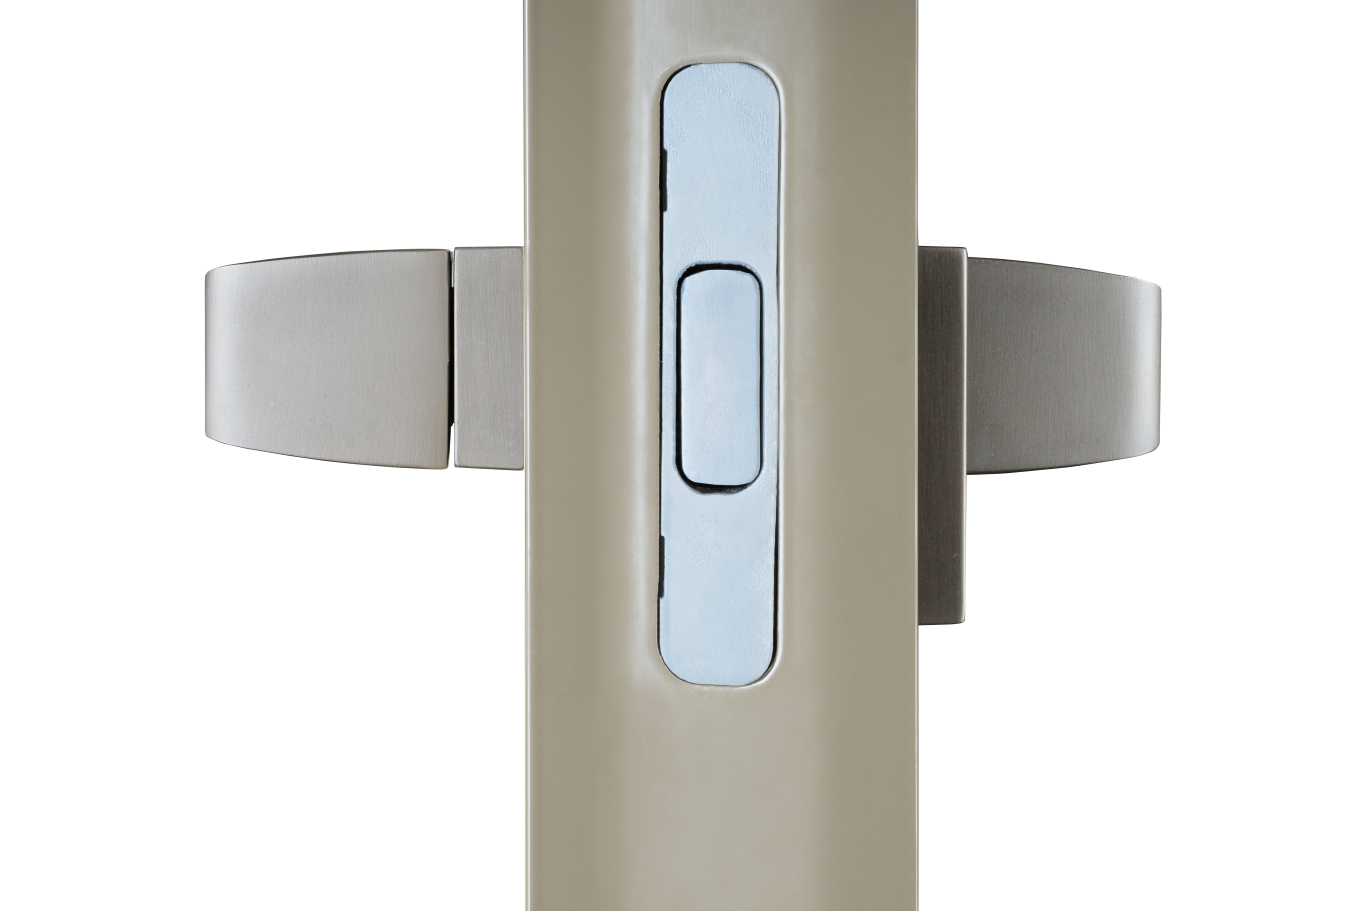 ... With A Key On Both Sides Or It May Have A Thumb Turn On One Of The Sides.  Glass Doors Can Also Be Made Without Any Locks, Just With A Selected Handle.